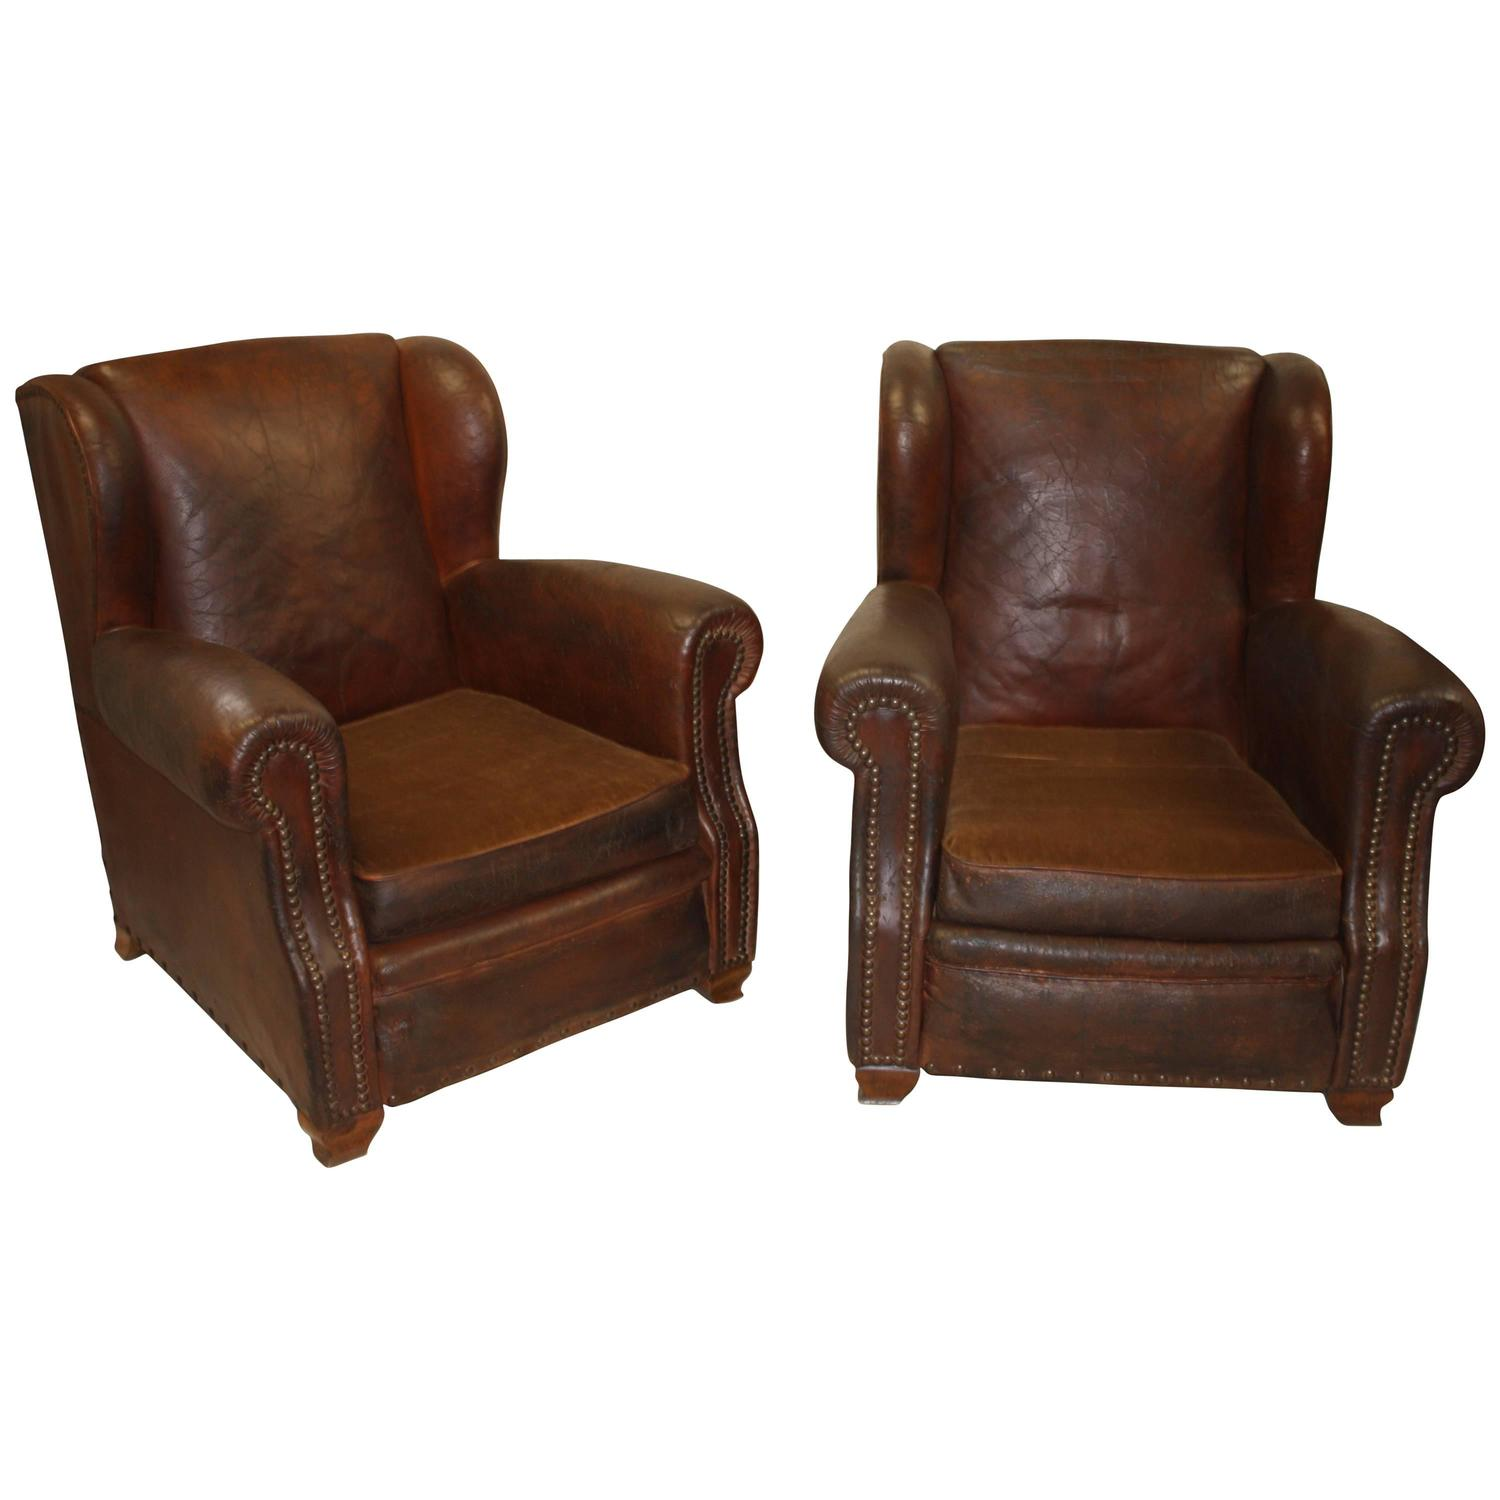 French Club Chair Pair Of French Leather Club Chairs For Sale At 1stdibs